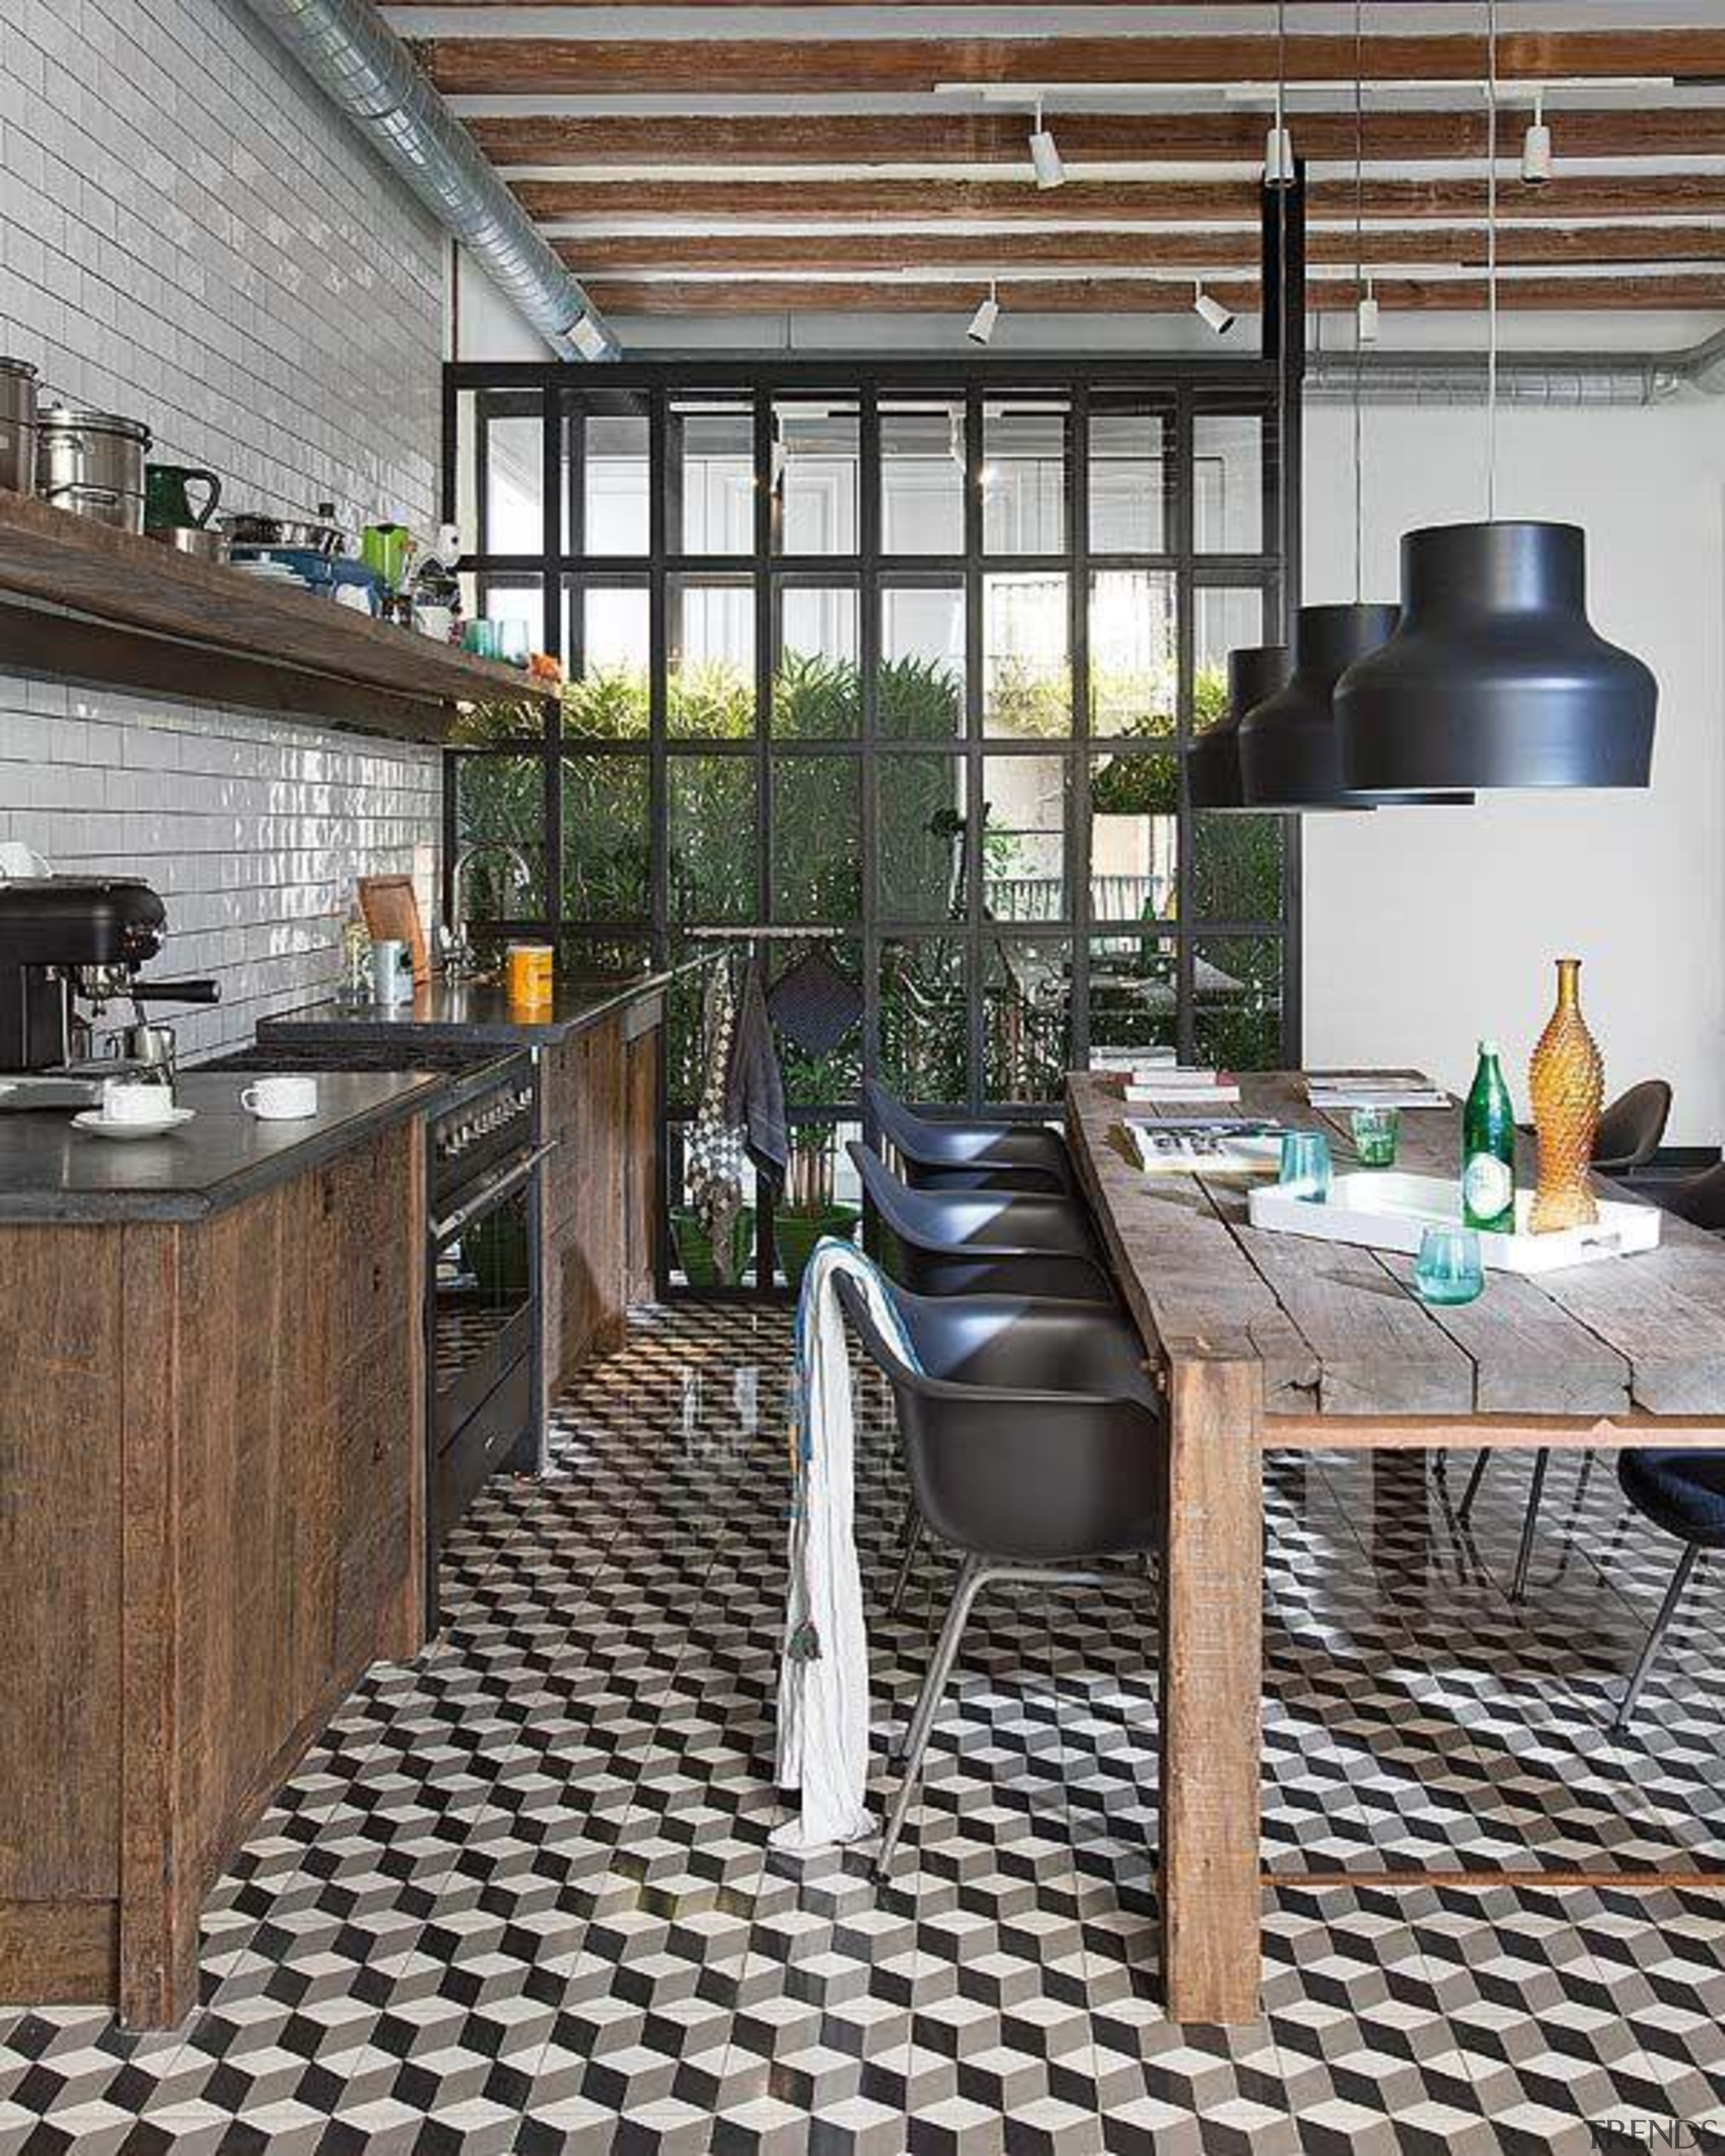 Start a myTrends ProjectCreate an ideas hub for interior design, outdoor structure, patio, table, black, gray, white